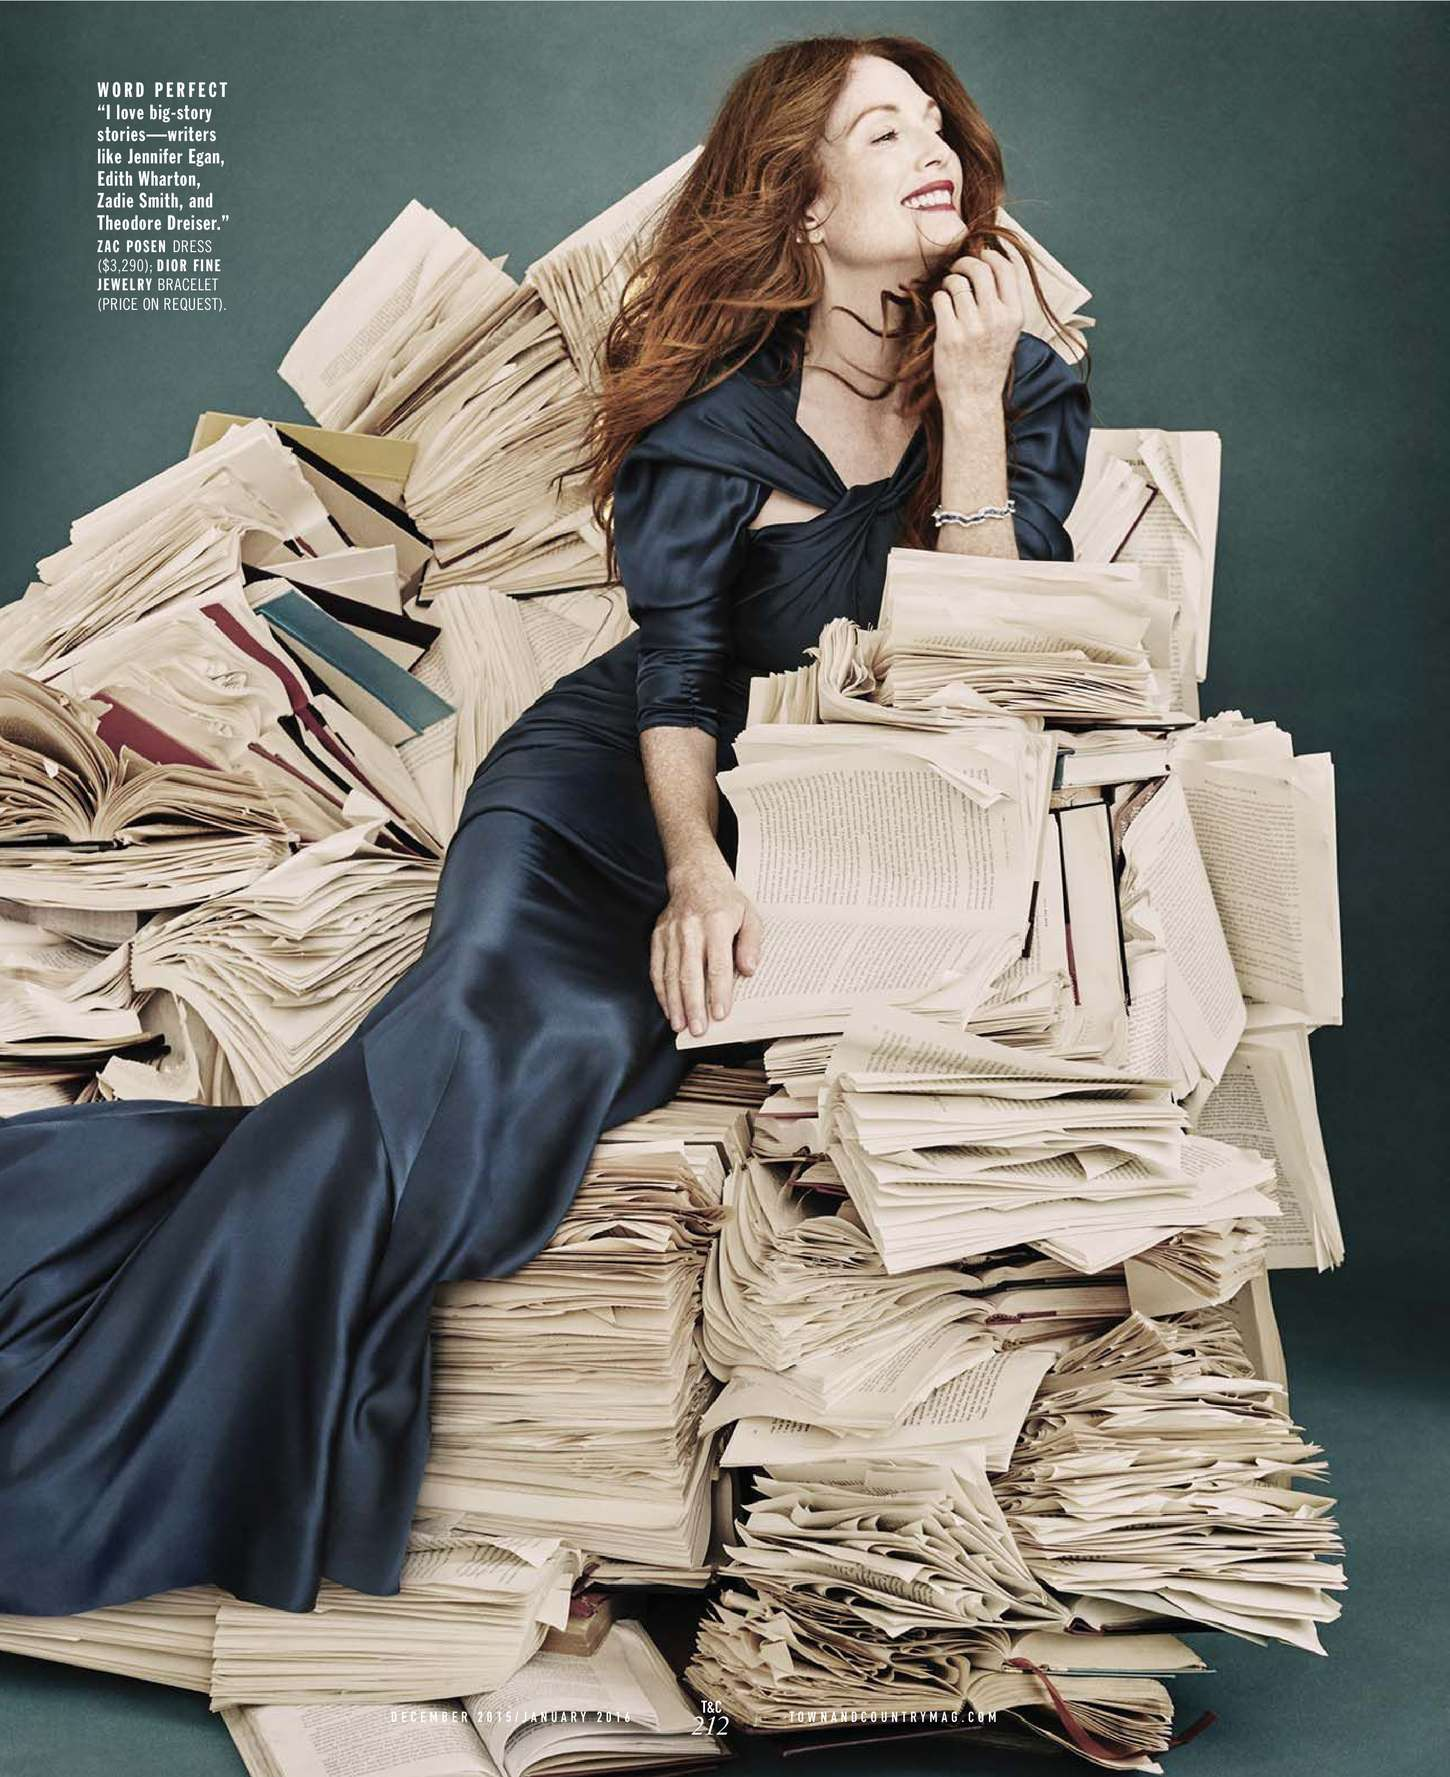 Julianne Moore 2015 : Julianne Moore: Town and Country US 2015 -06